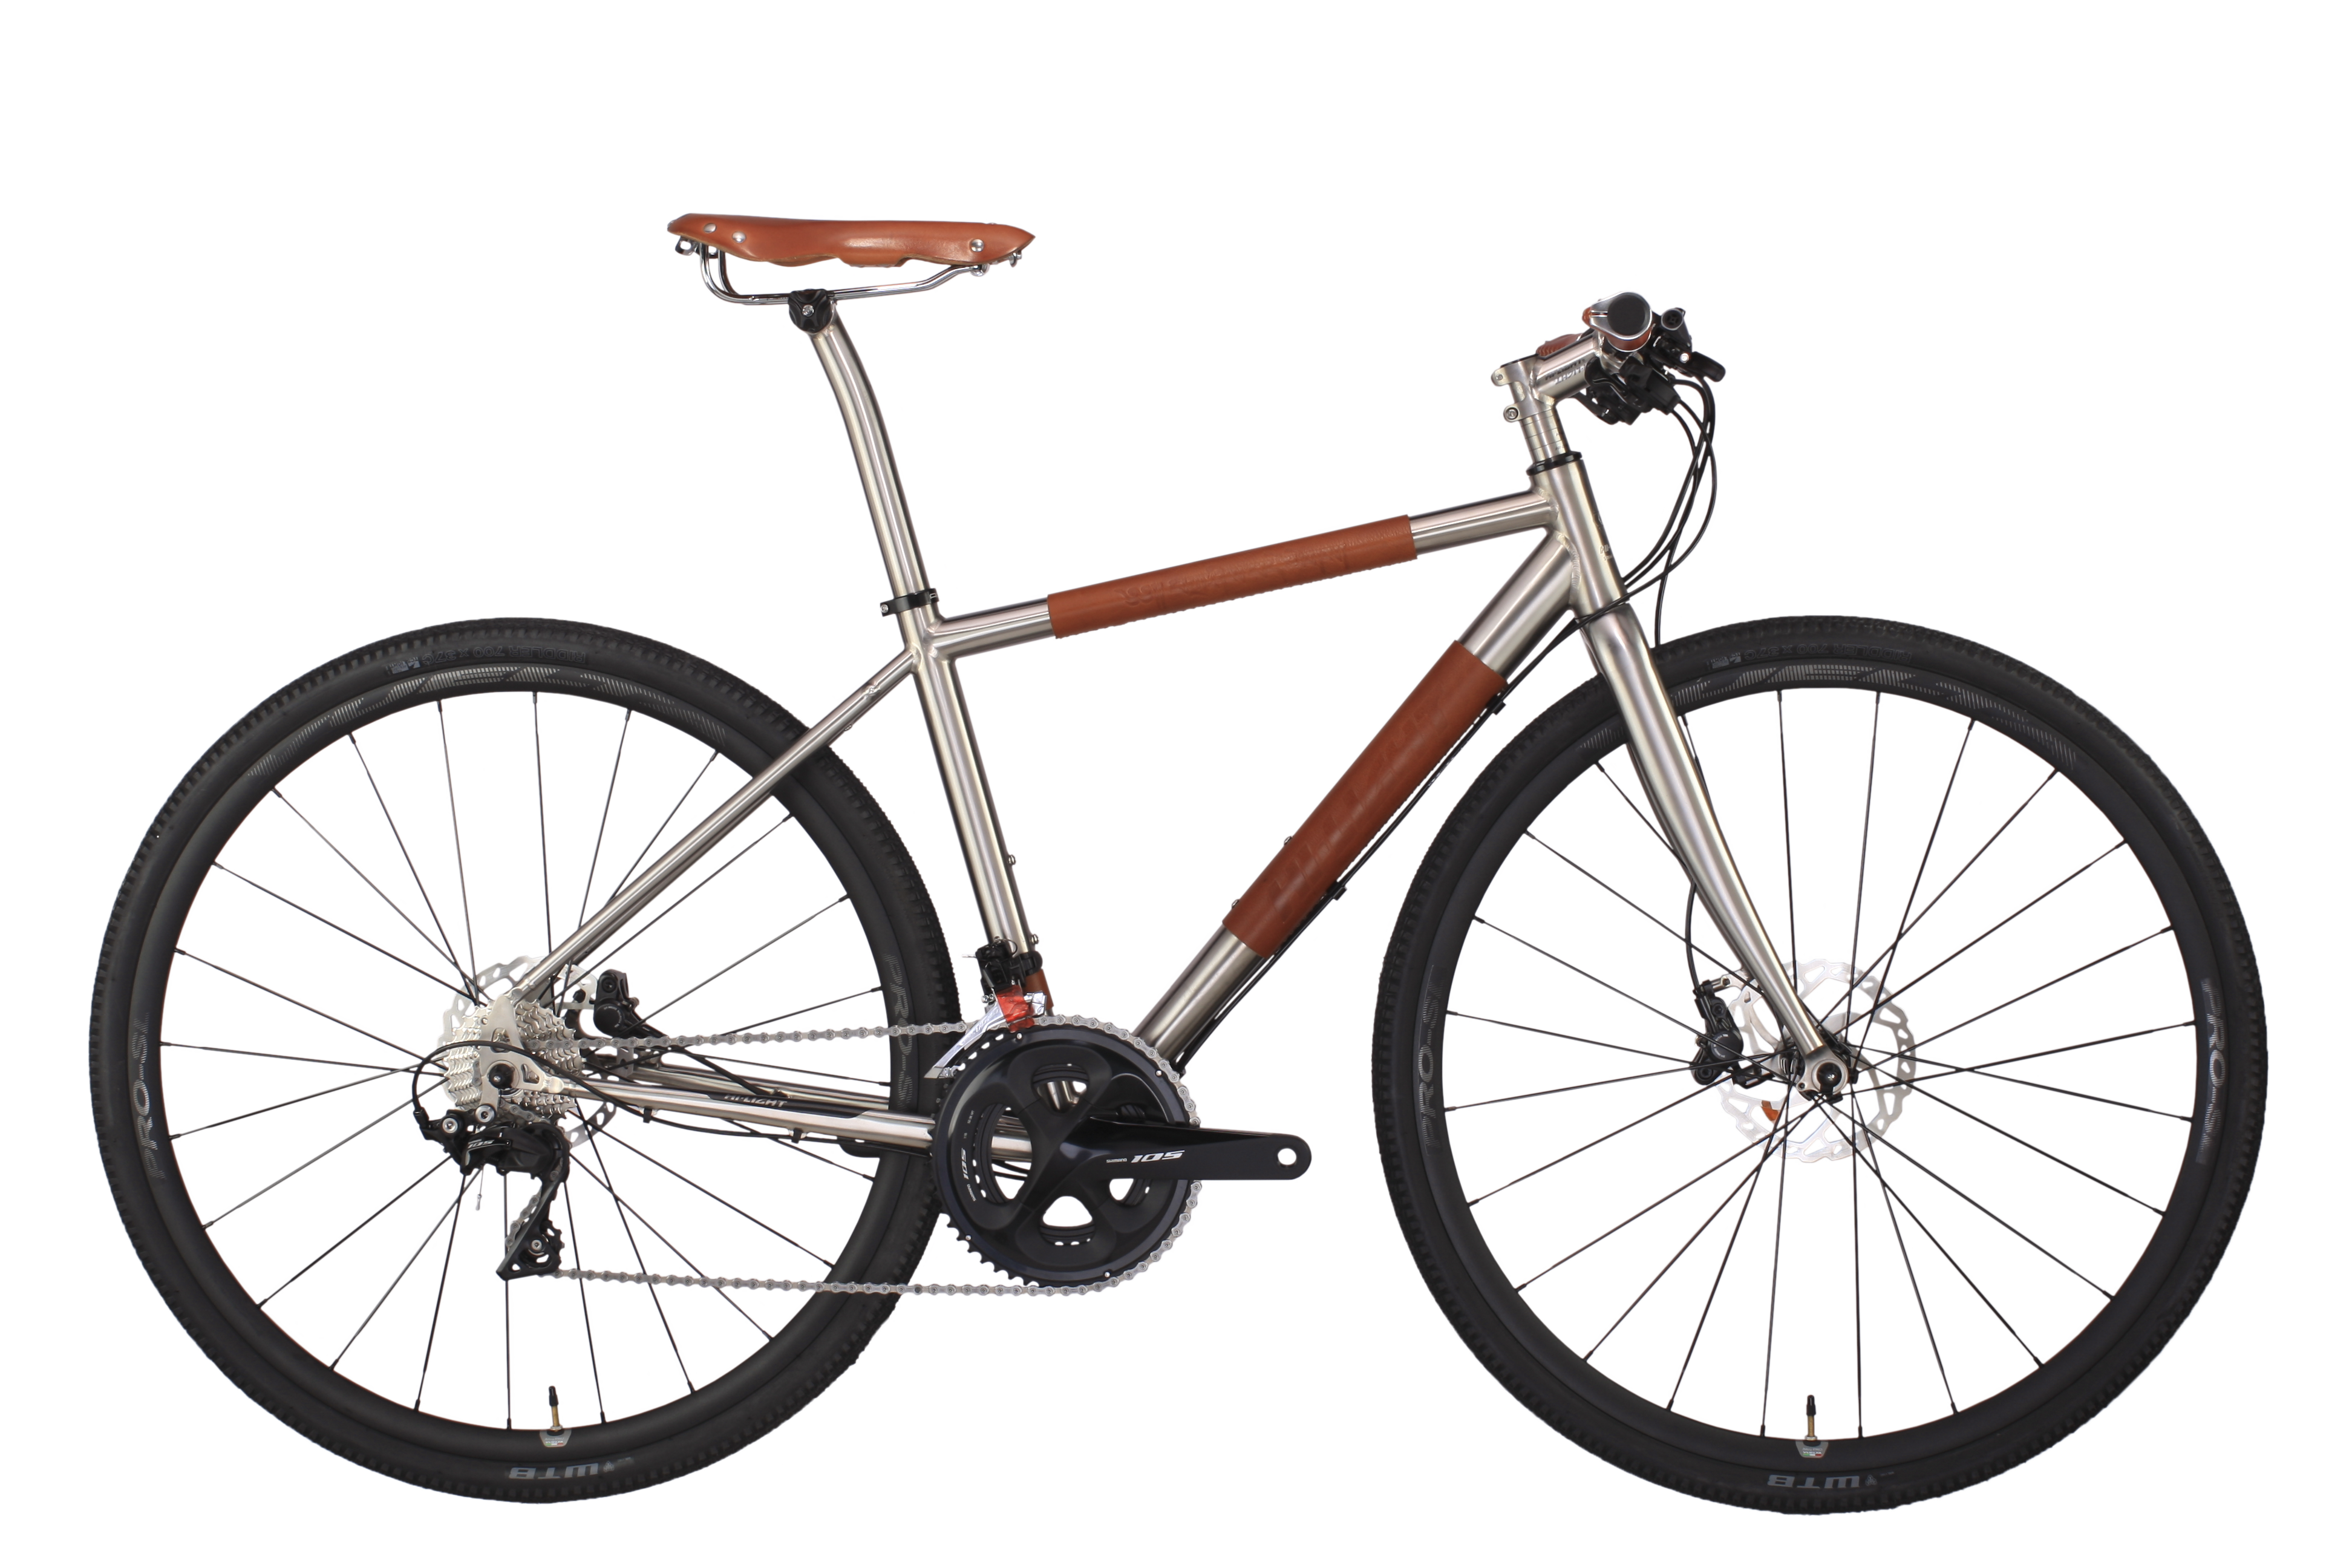 TIBET TITANIUM TOURING BIKE